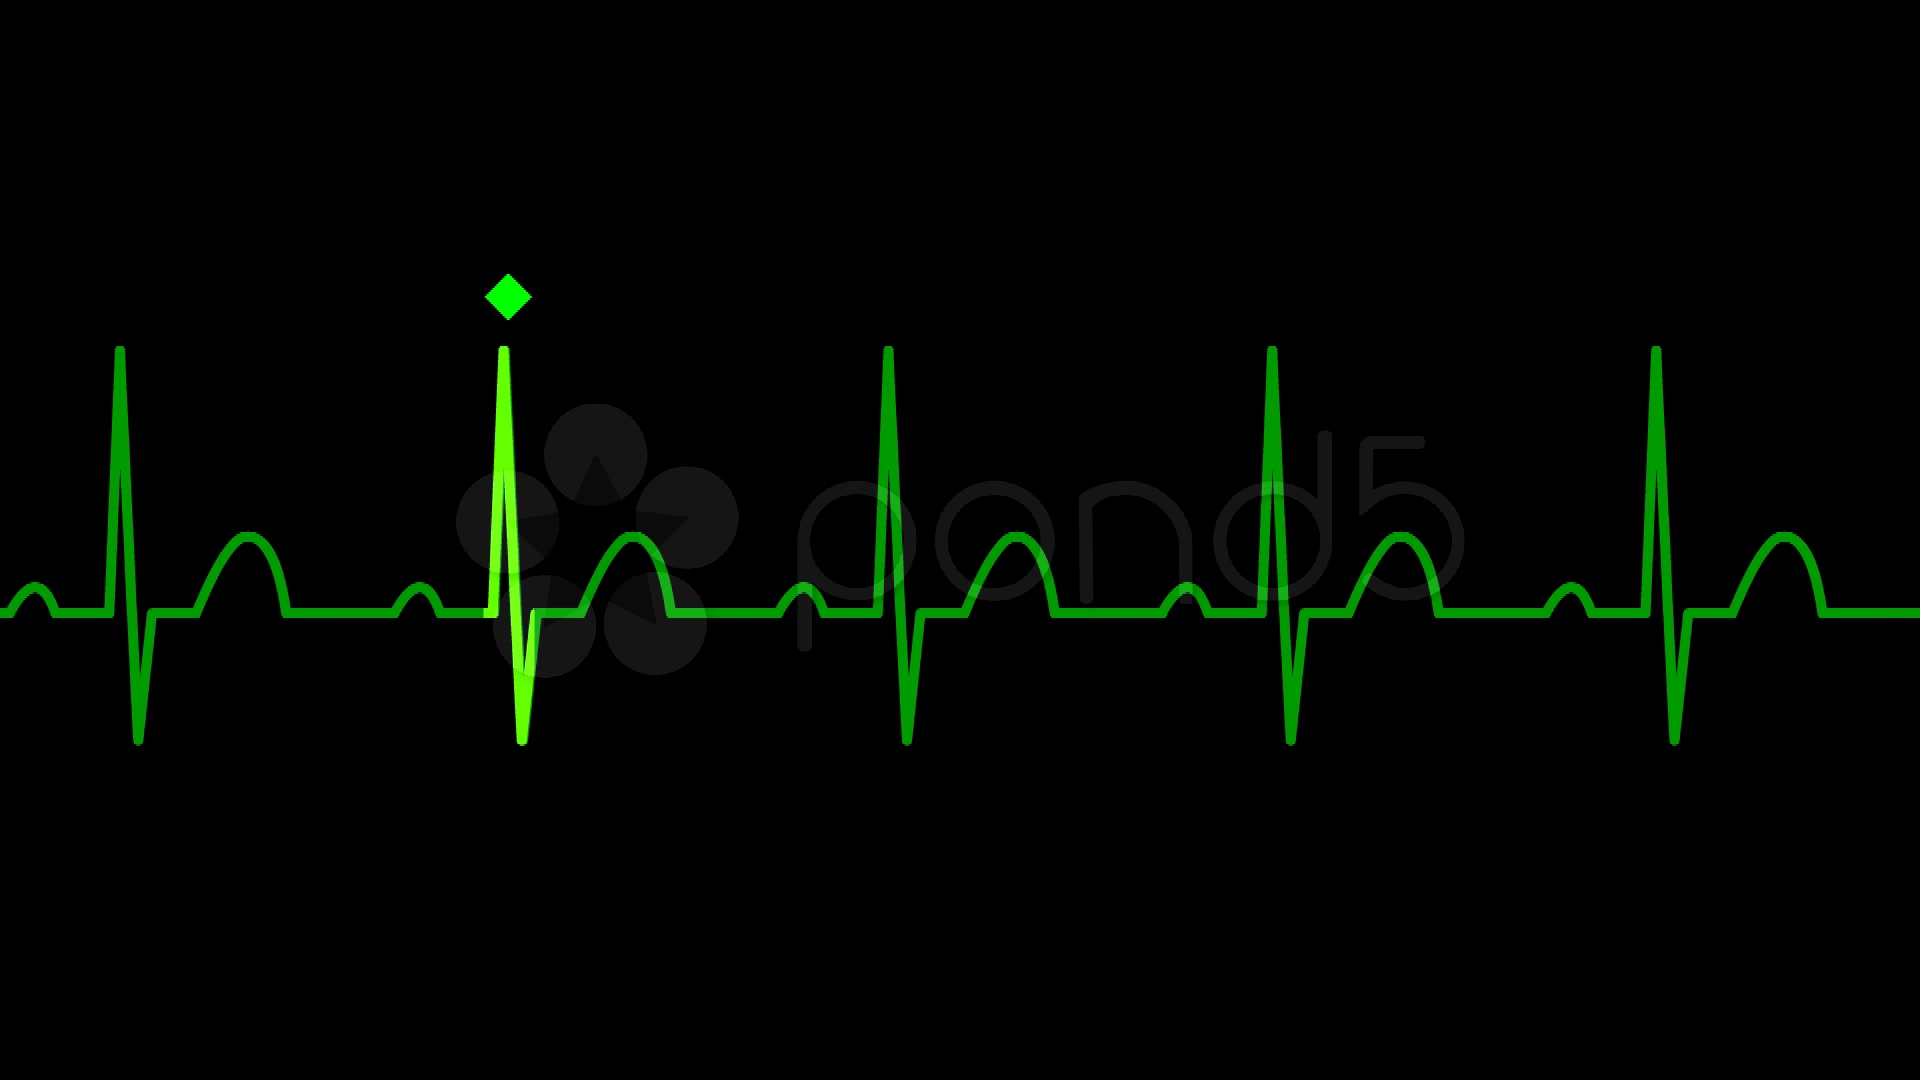 Cardiology Wallpaper 1920x1080